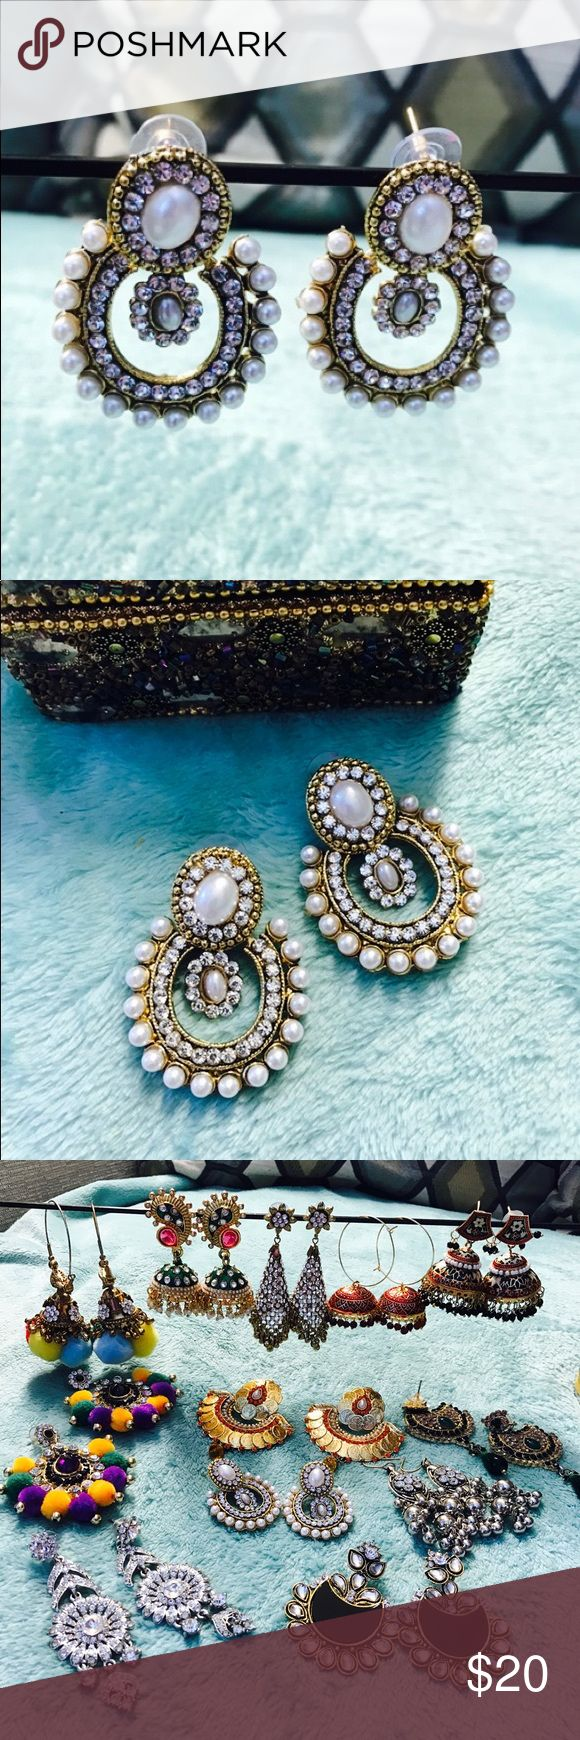 Indian rhinestone and pearl Earrings!❤️💕 Brand new!❤️💕❤️ I love my all jewelry pieces ❤️💕 I have hundreds of it! So I am selling this! It is perfect for party, wedding, prom❤️💕❤️ Boutique Jewelry Earrings